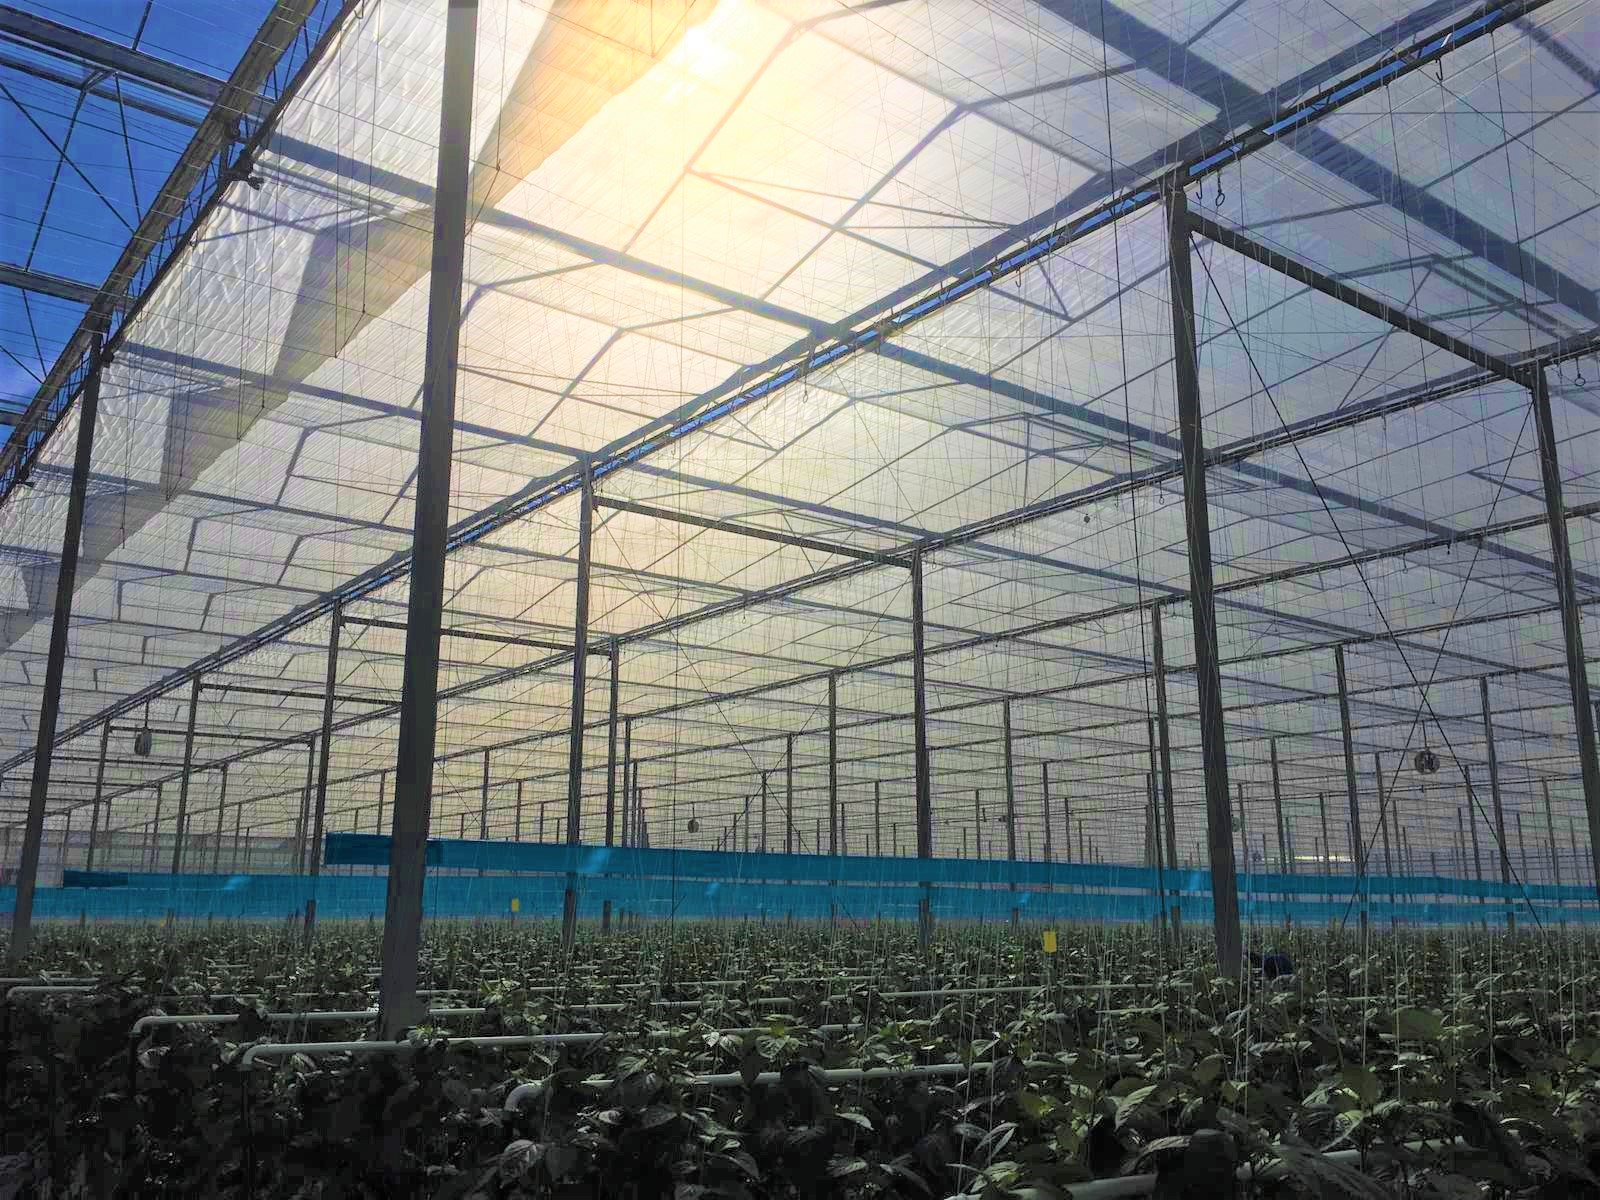 ABOVE With peppers being more sensitive to light, Allegro Acres has seen a greater need to use energy curtains in the early part of the year.